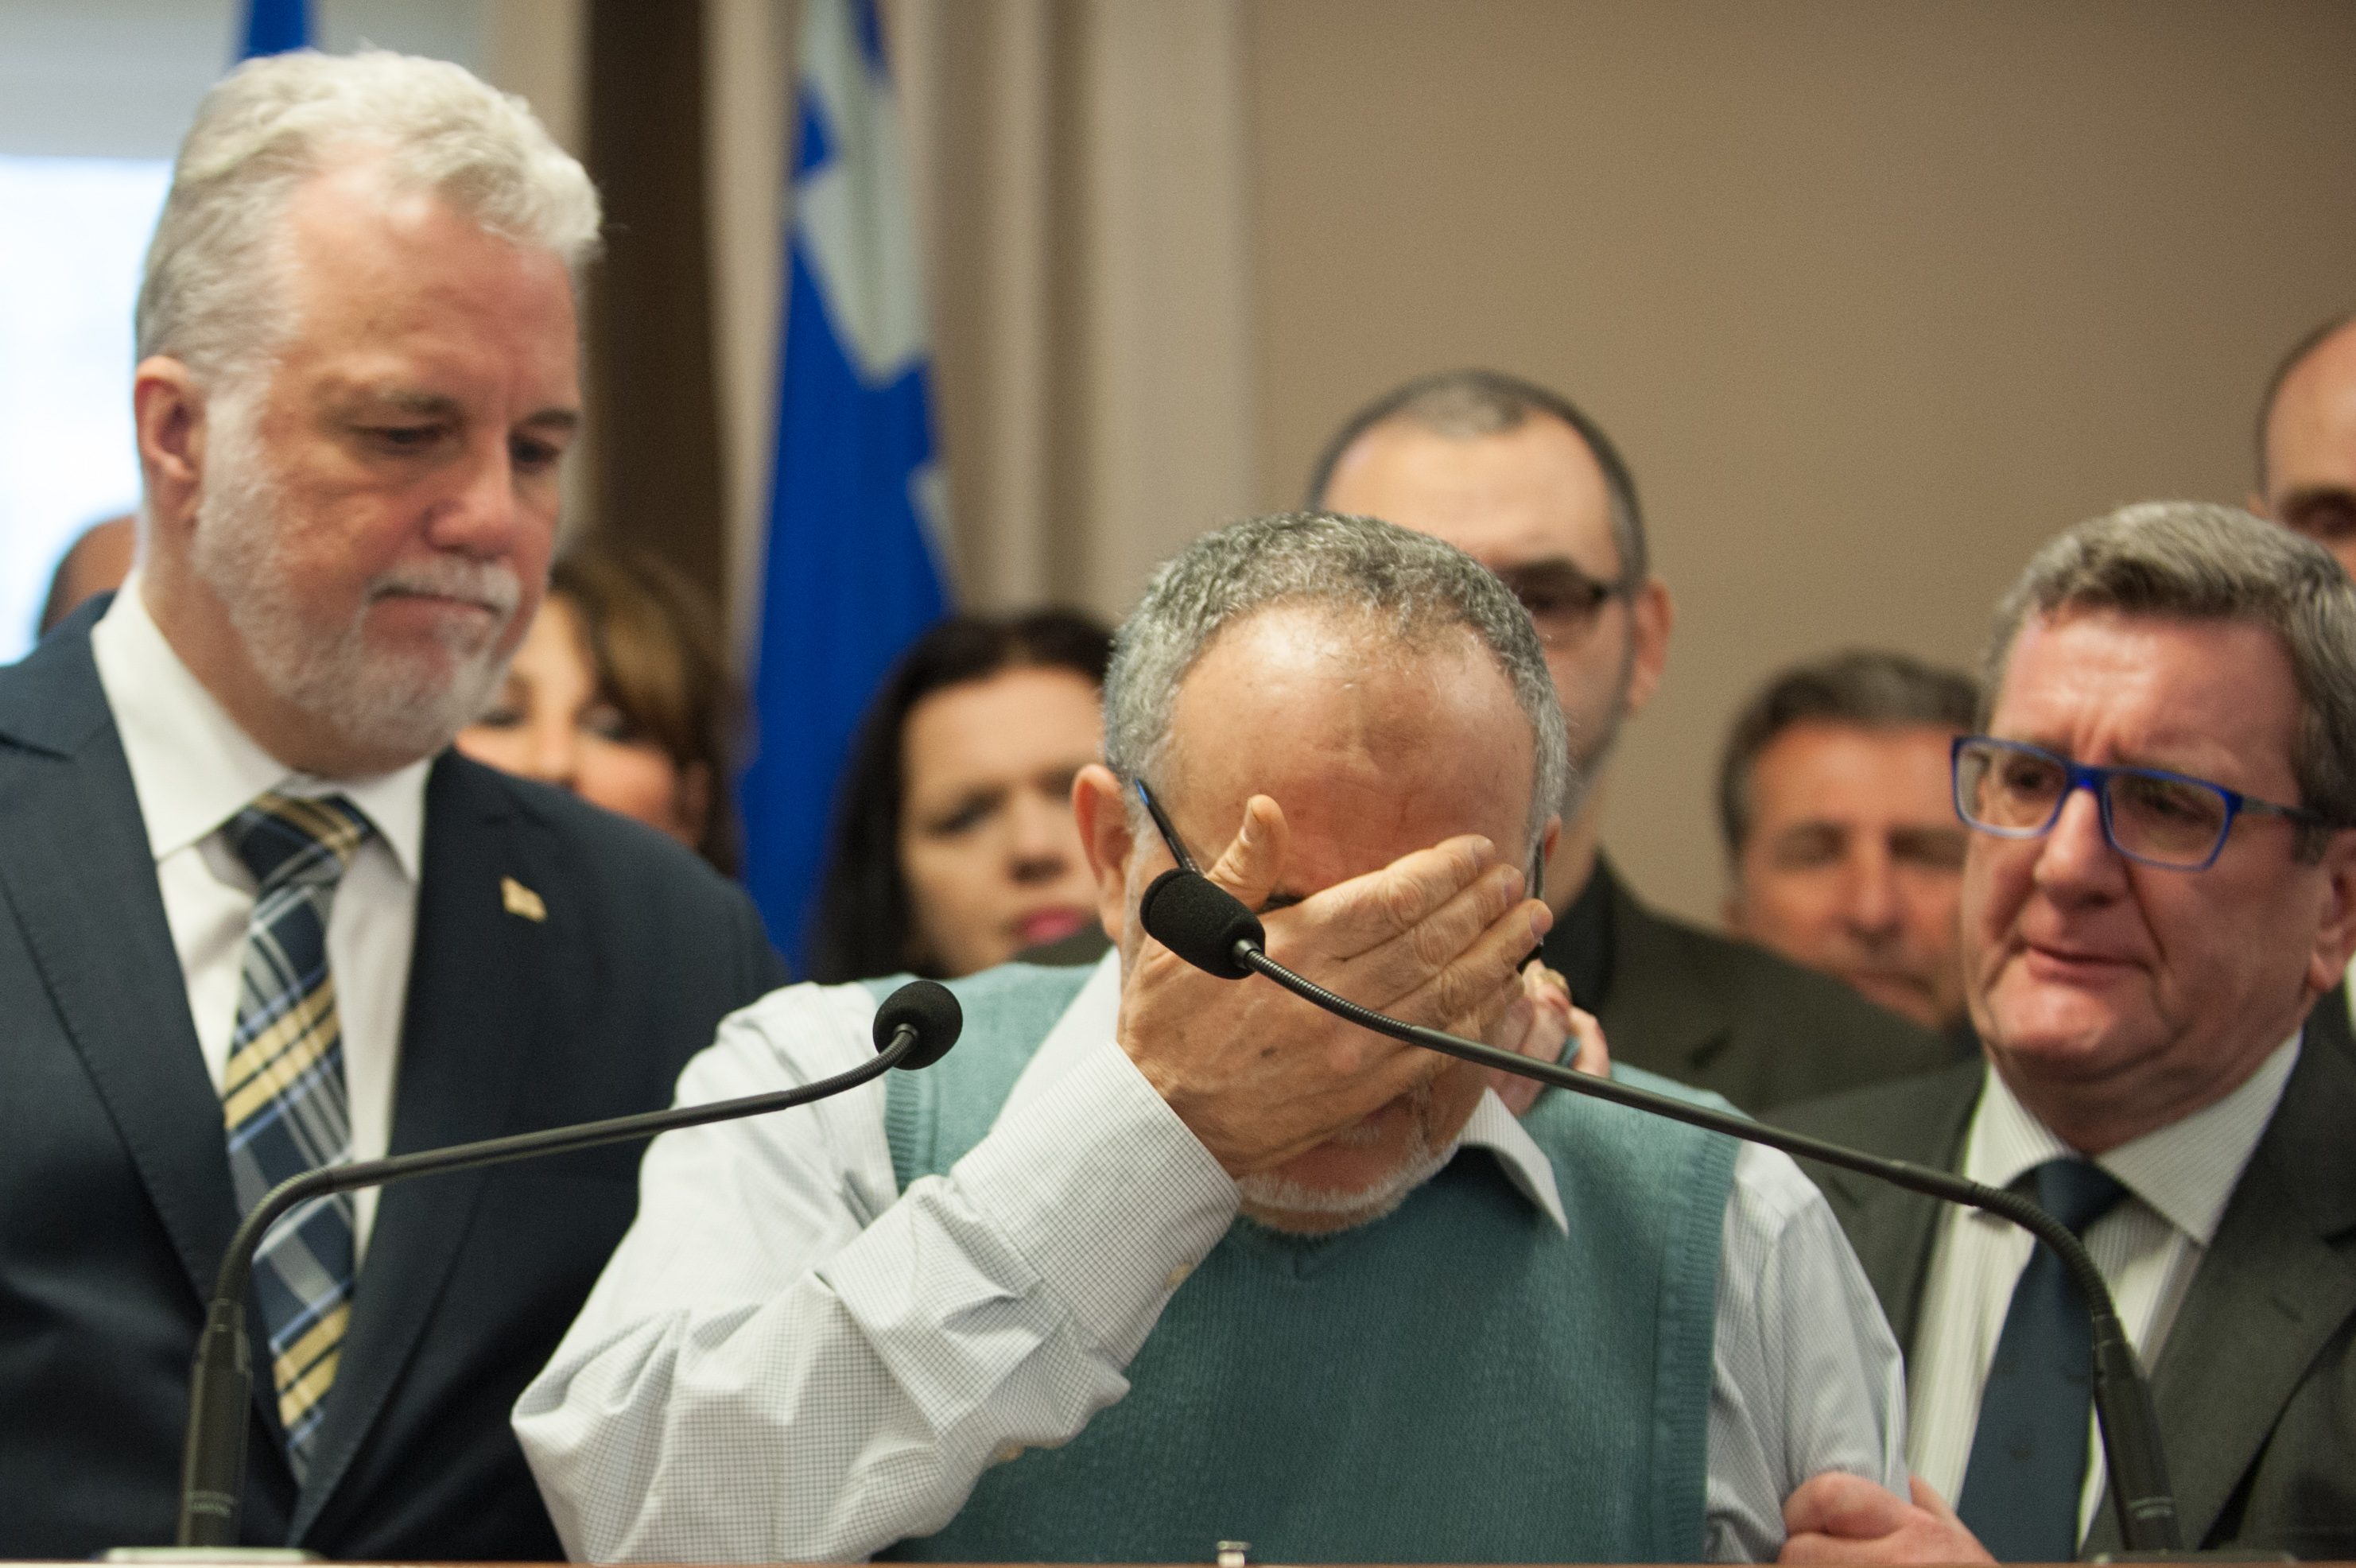 L-R: Philippe Couillard Quebec prime minister, Khaled El Kacemi, vice president of the Islamic Cultural Center of Quebec and Regis Labeaume Quebec city mayor hold a press conference (credit: ALICE CHICHE/AFP/Getty Images)